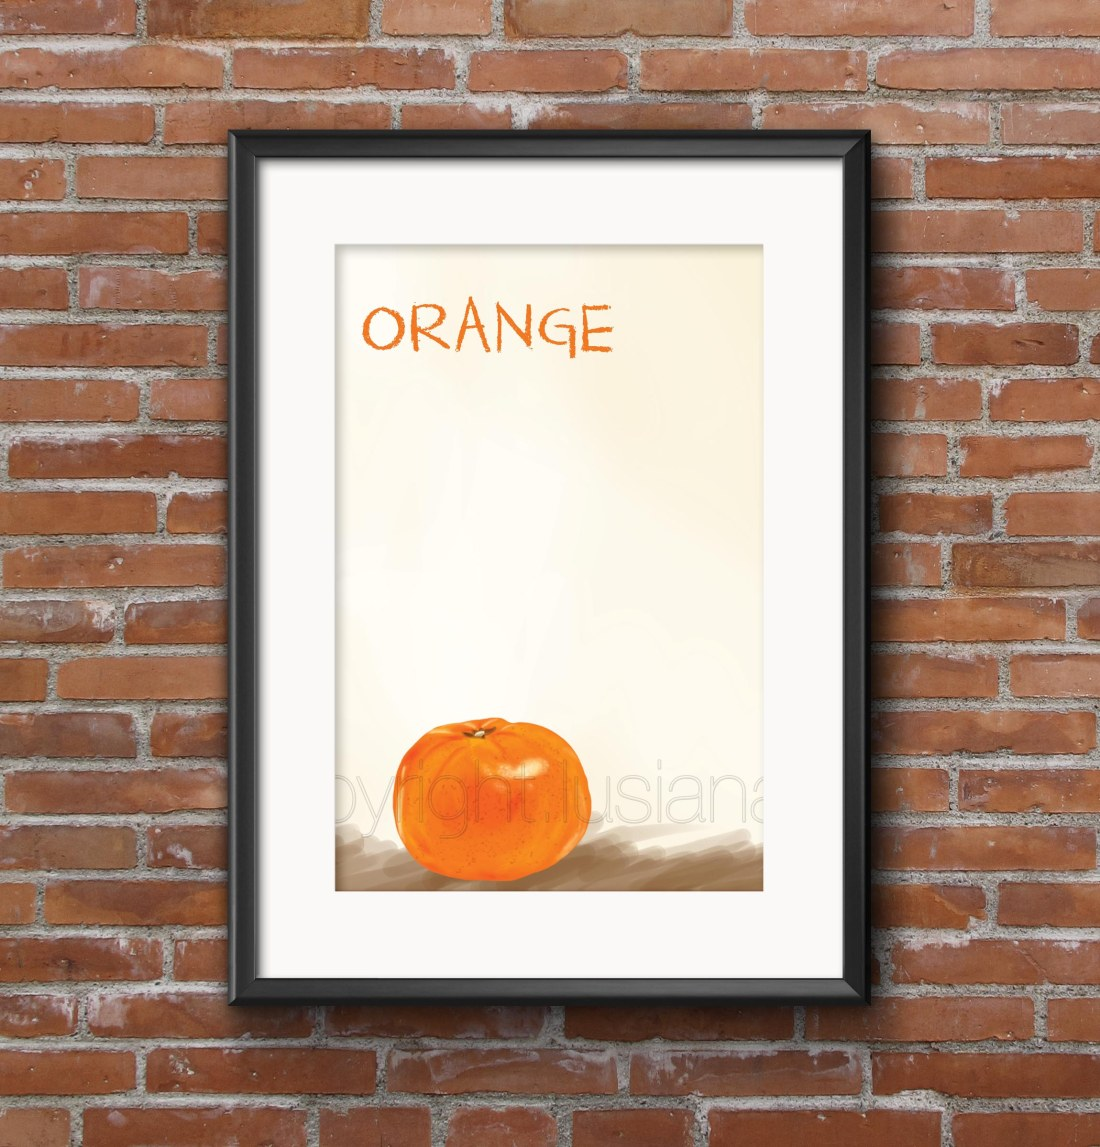 orange.copyright.lusiana